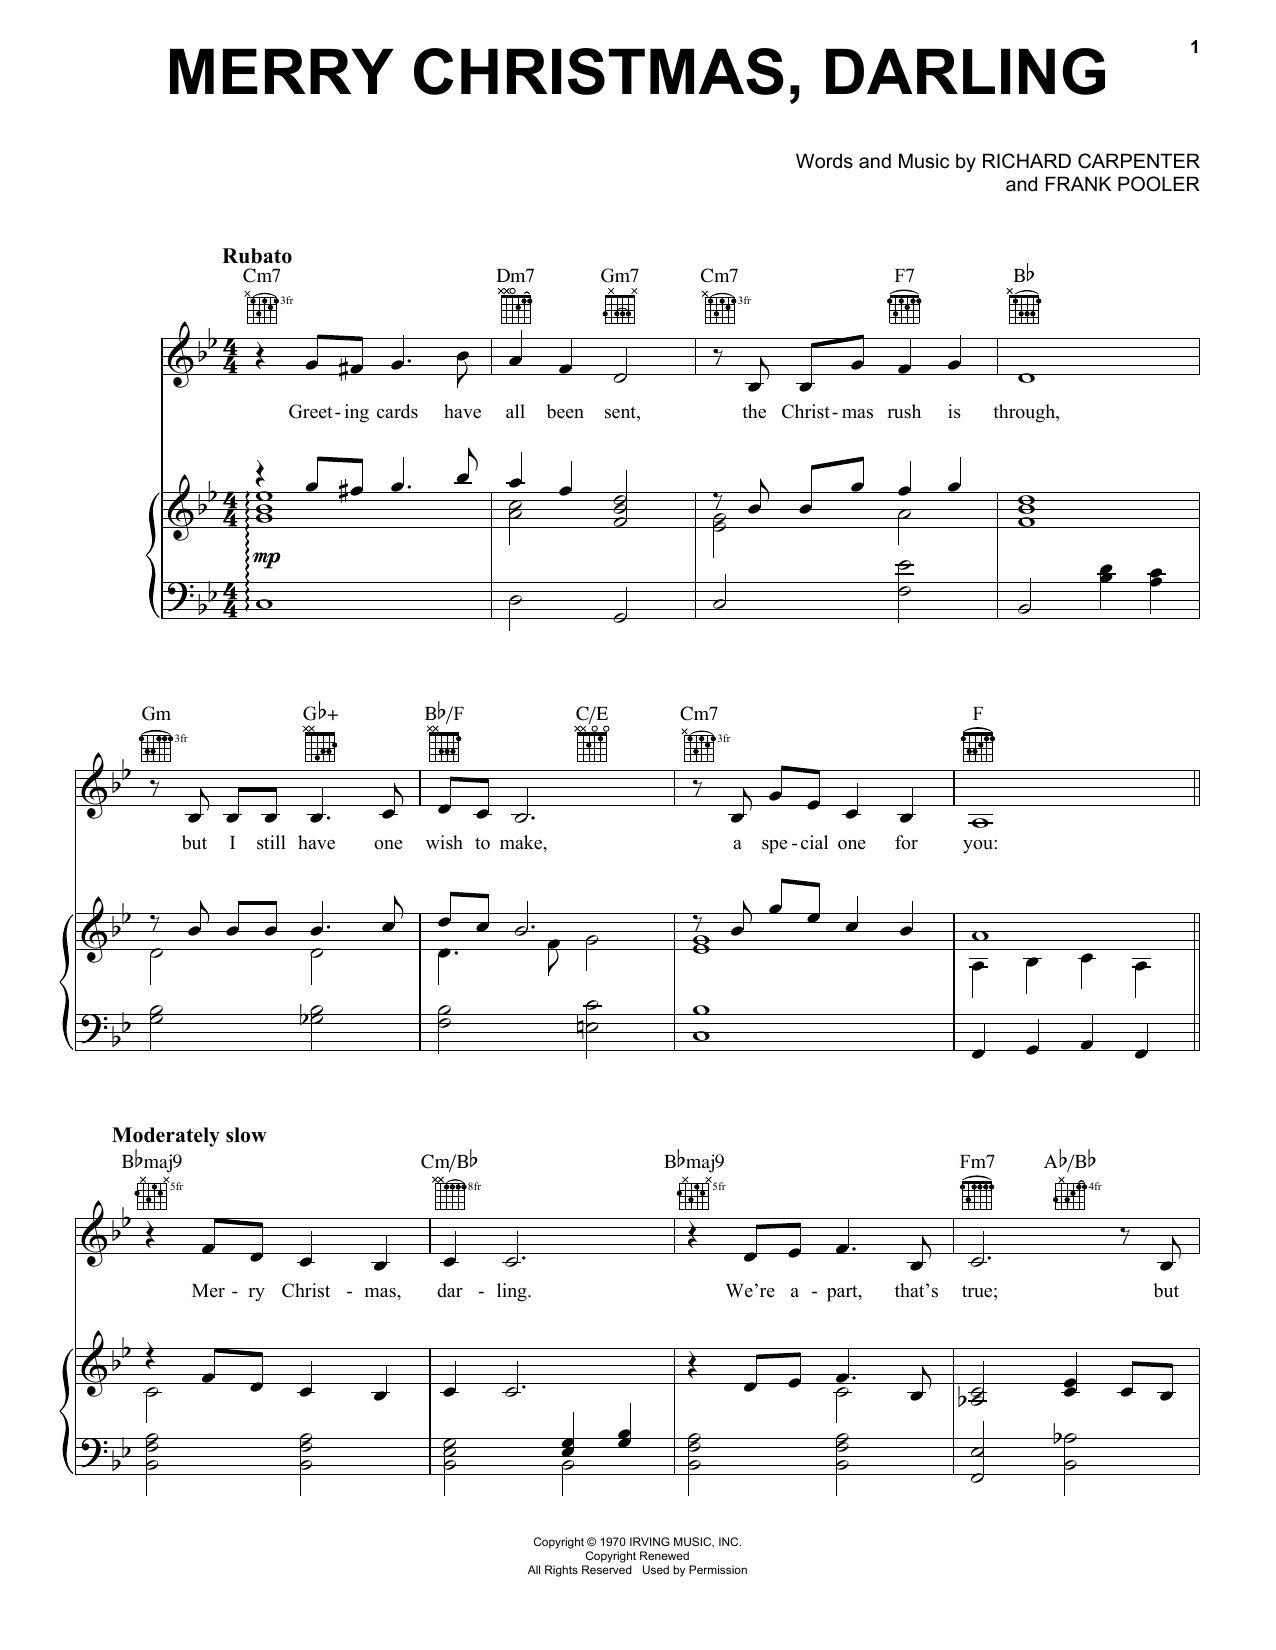 Carpenters Merry Christmas, Darling sheet music preview music notes and score for Guitar Tab including 3 page(s)